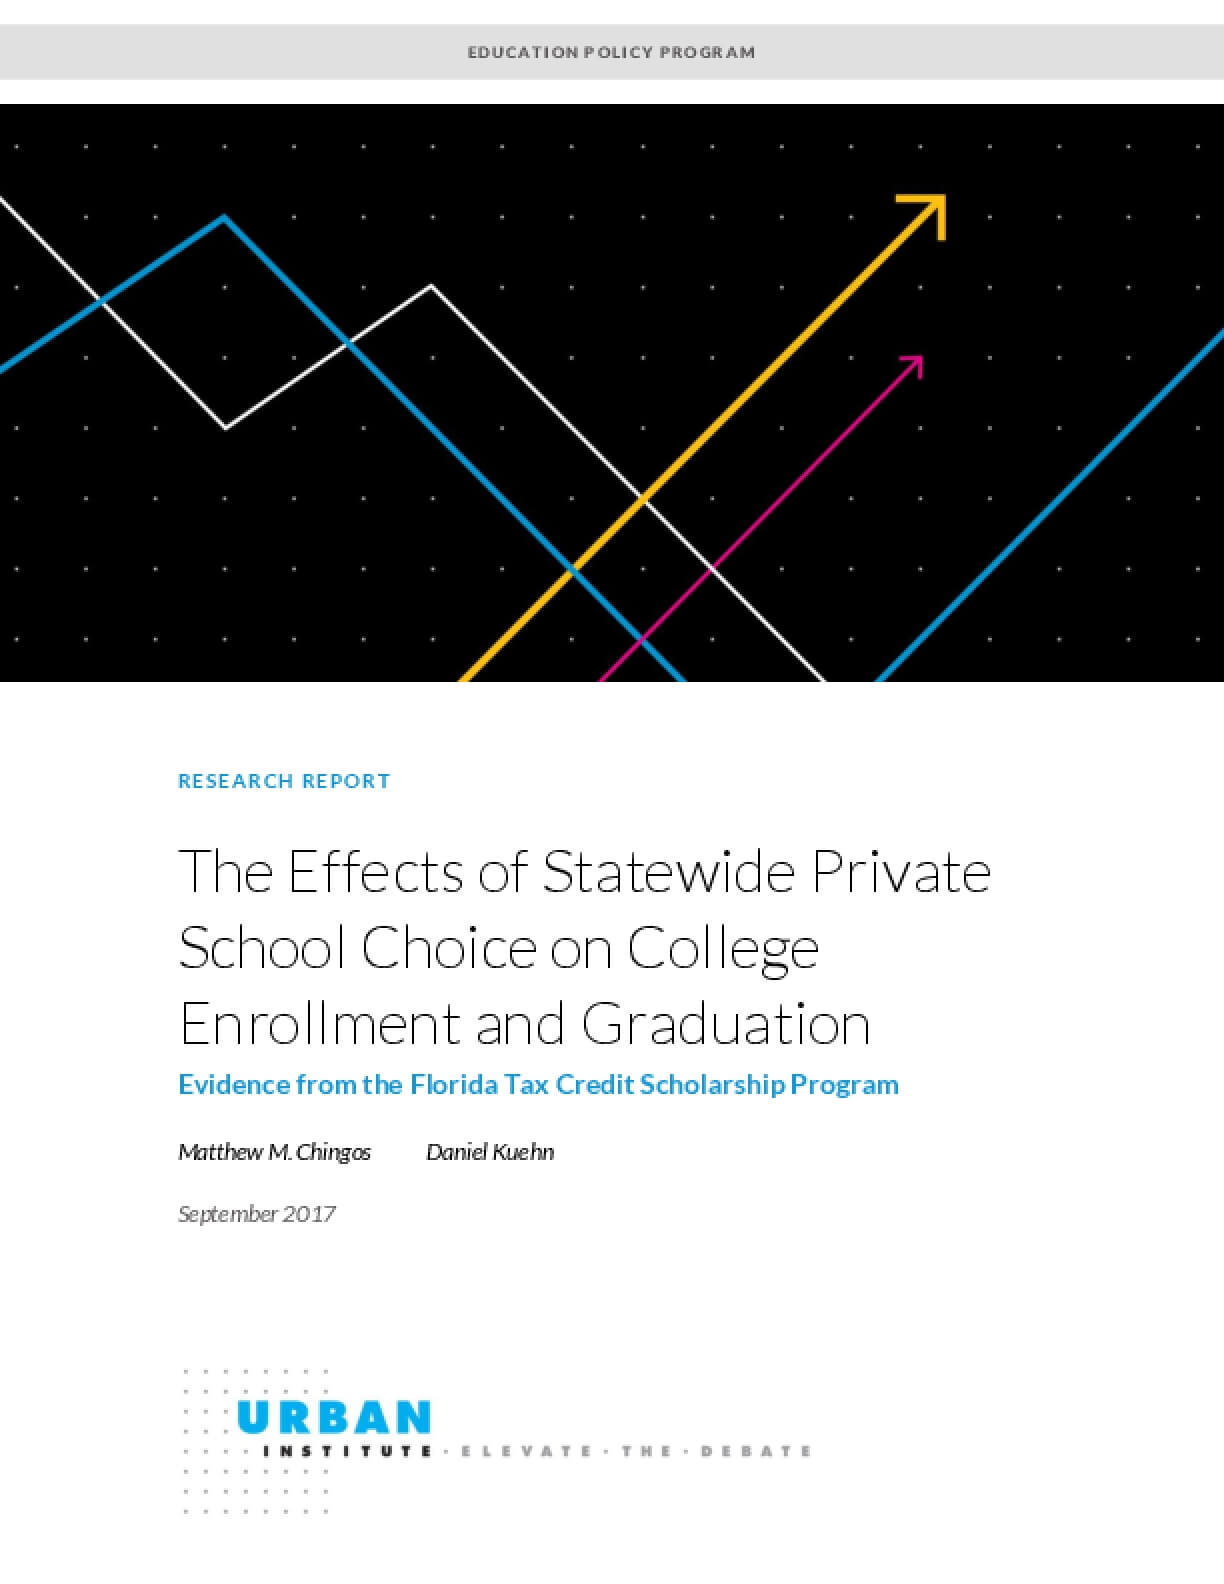 The Effects of Statewide Private School Choice on College Enrollment and Graduation